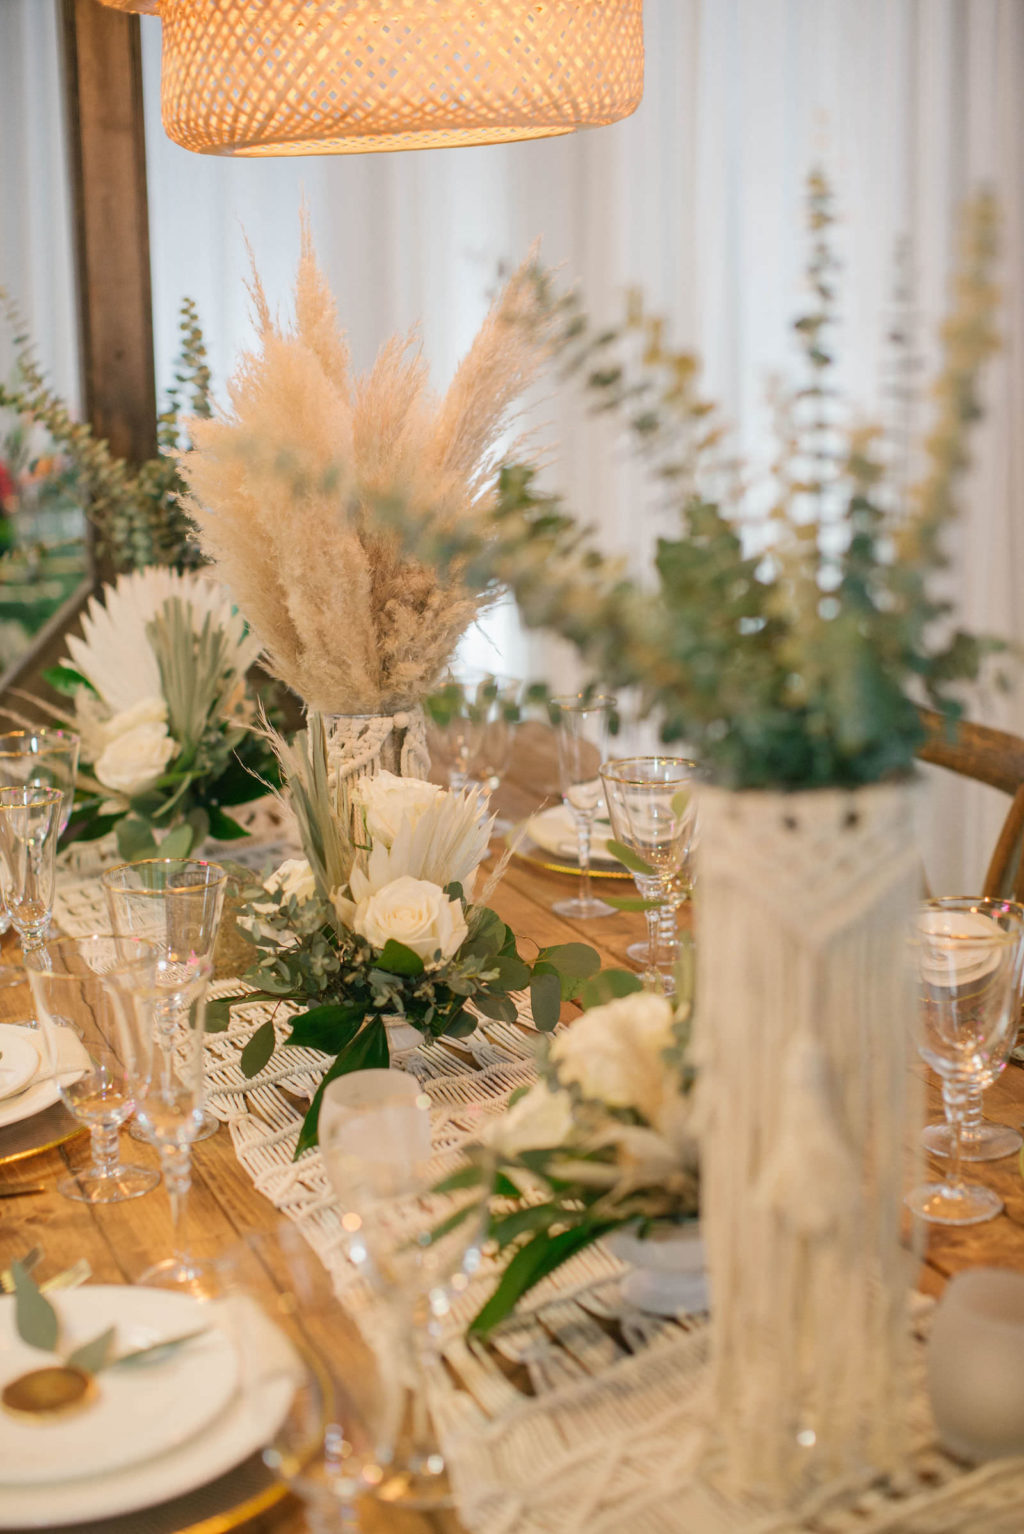 Boho Pampas Grass and Eucalyptus Greenery Centerpieces with Macrame Table Runner | Reception Decor Ideas and Inspiration | Styled With Love at St. Pete Beach Wedding Venue Bellwether Beach Resort